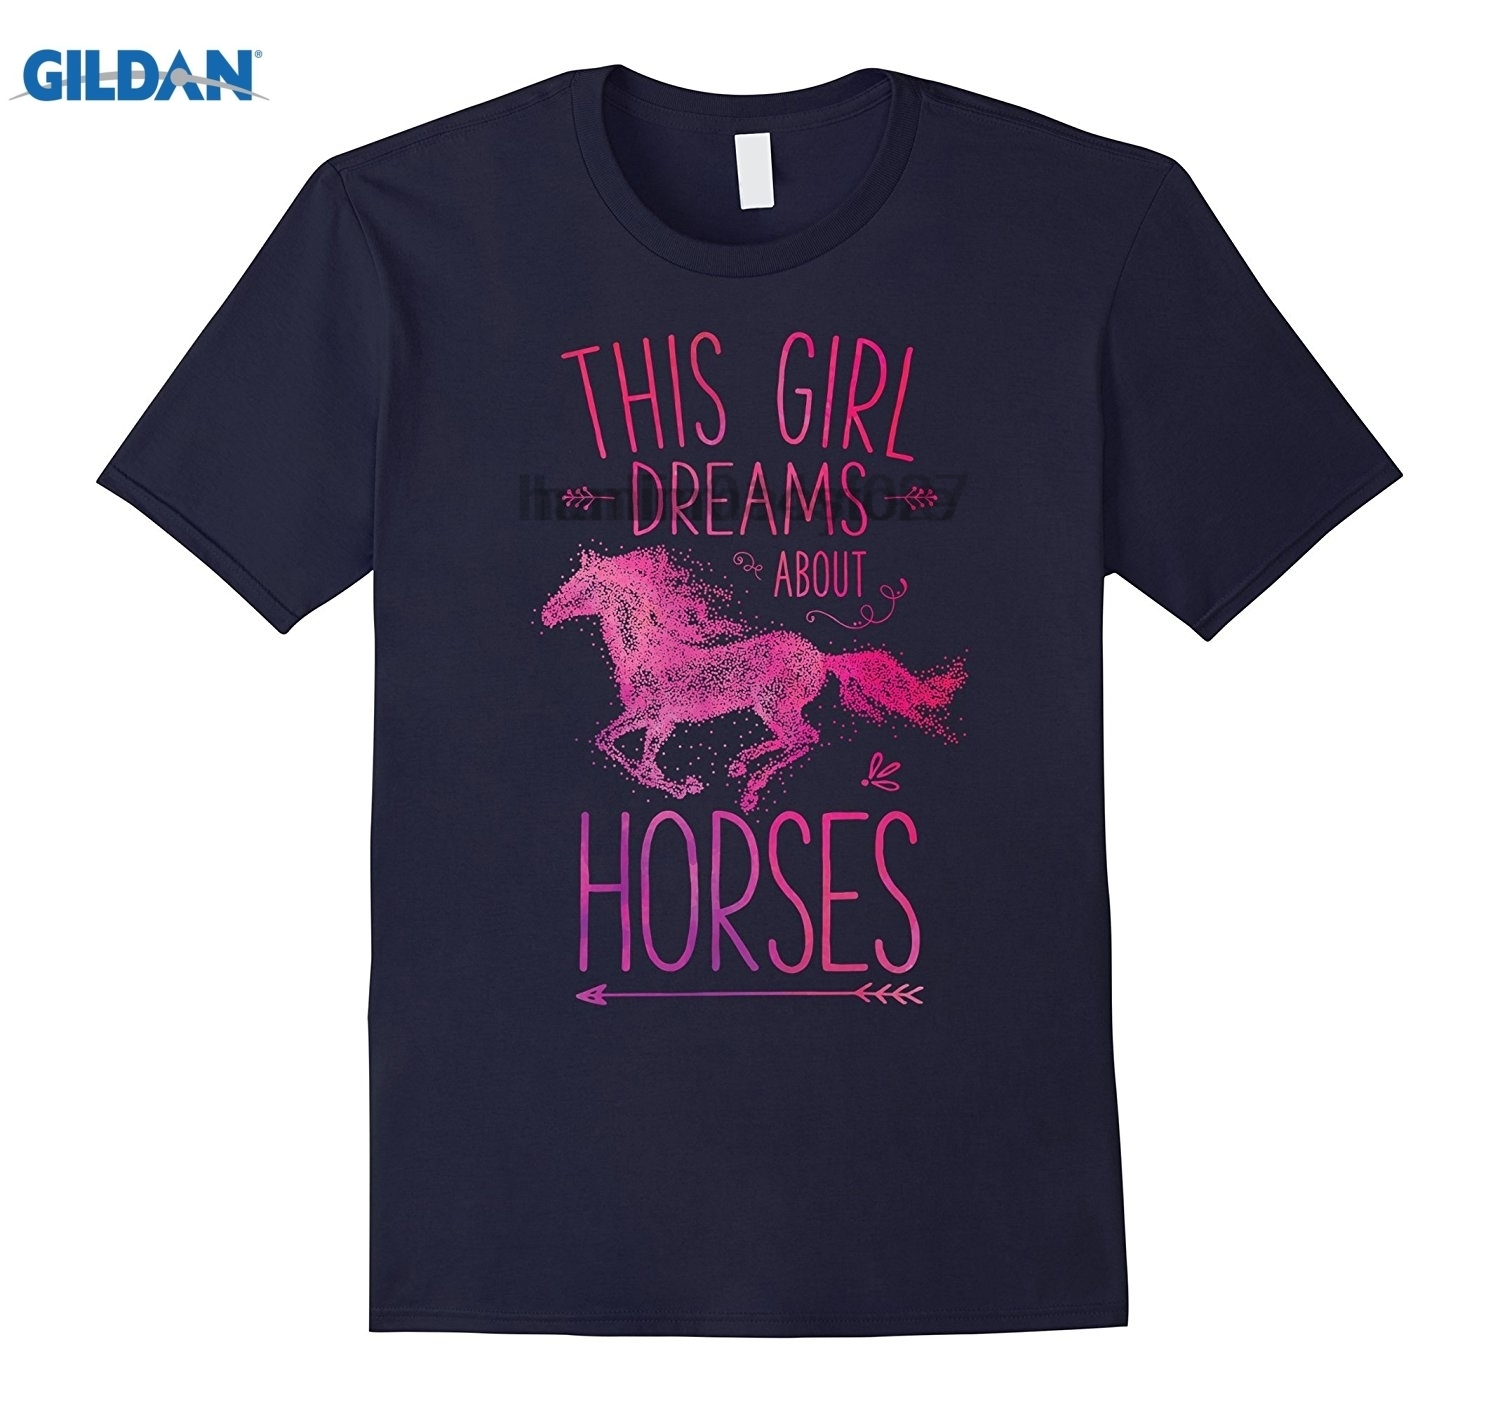 GILDAN This Girl Dreams About Horses T Shirt I Love Horse Riding ...